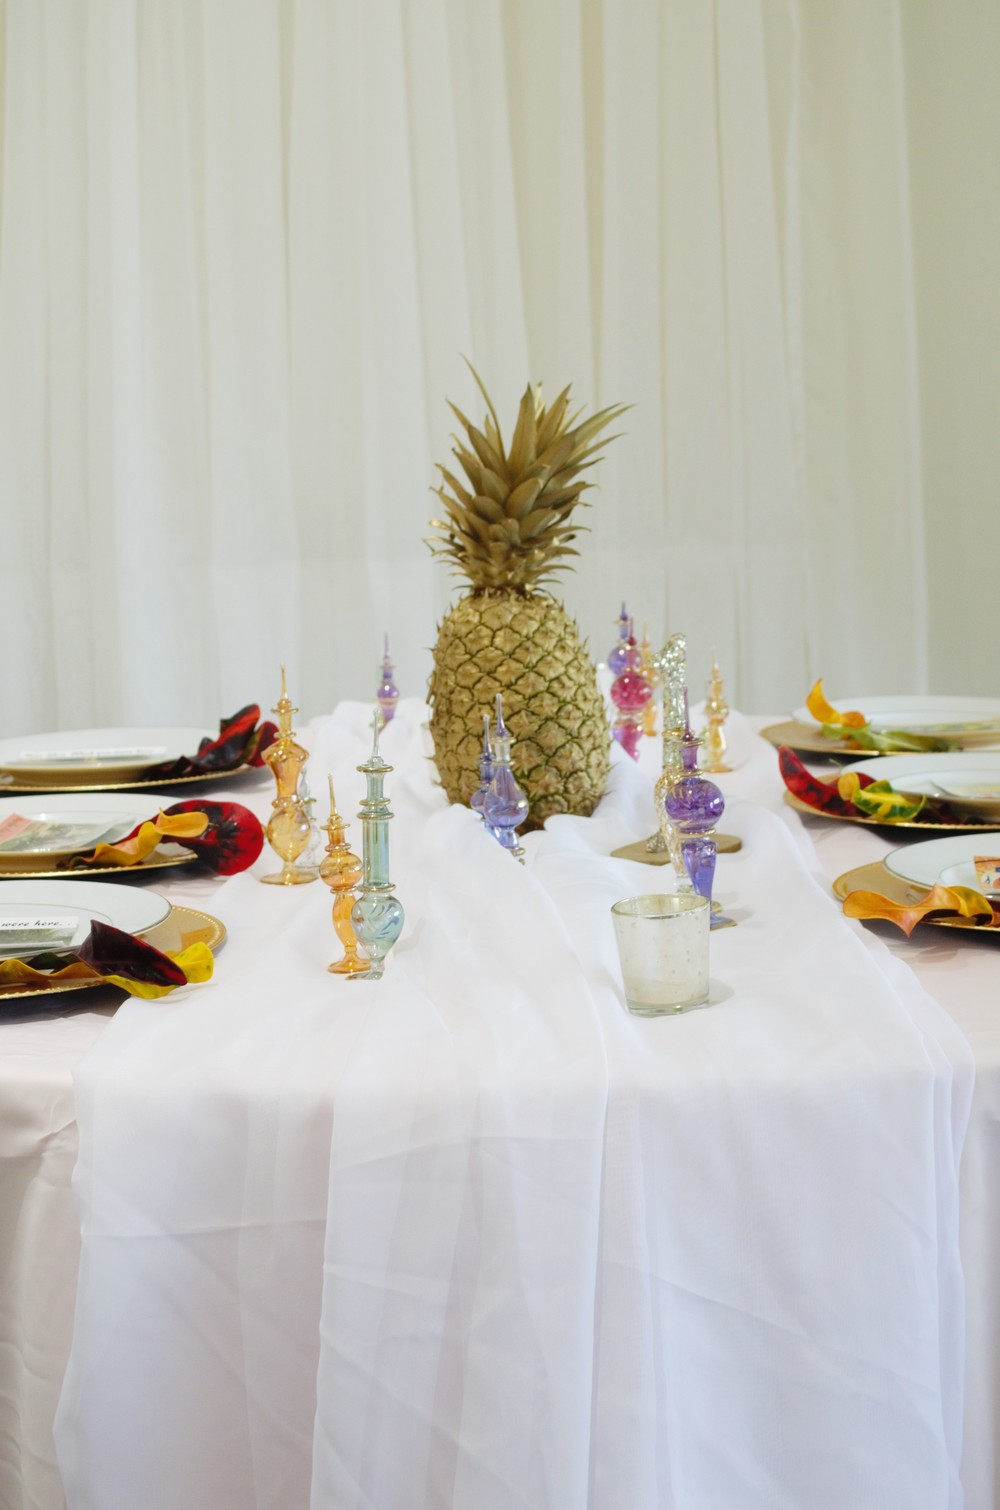 New Centerpiece Ideas from Caribbean Catering